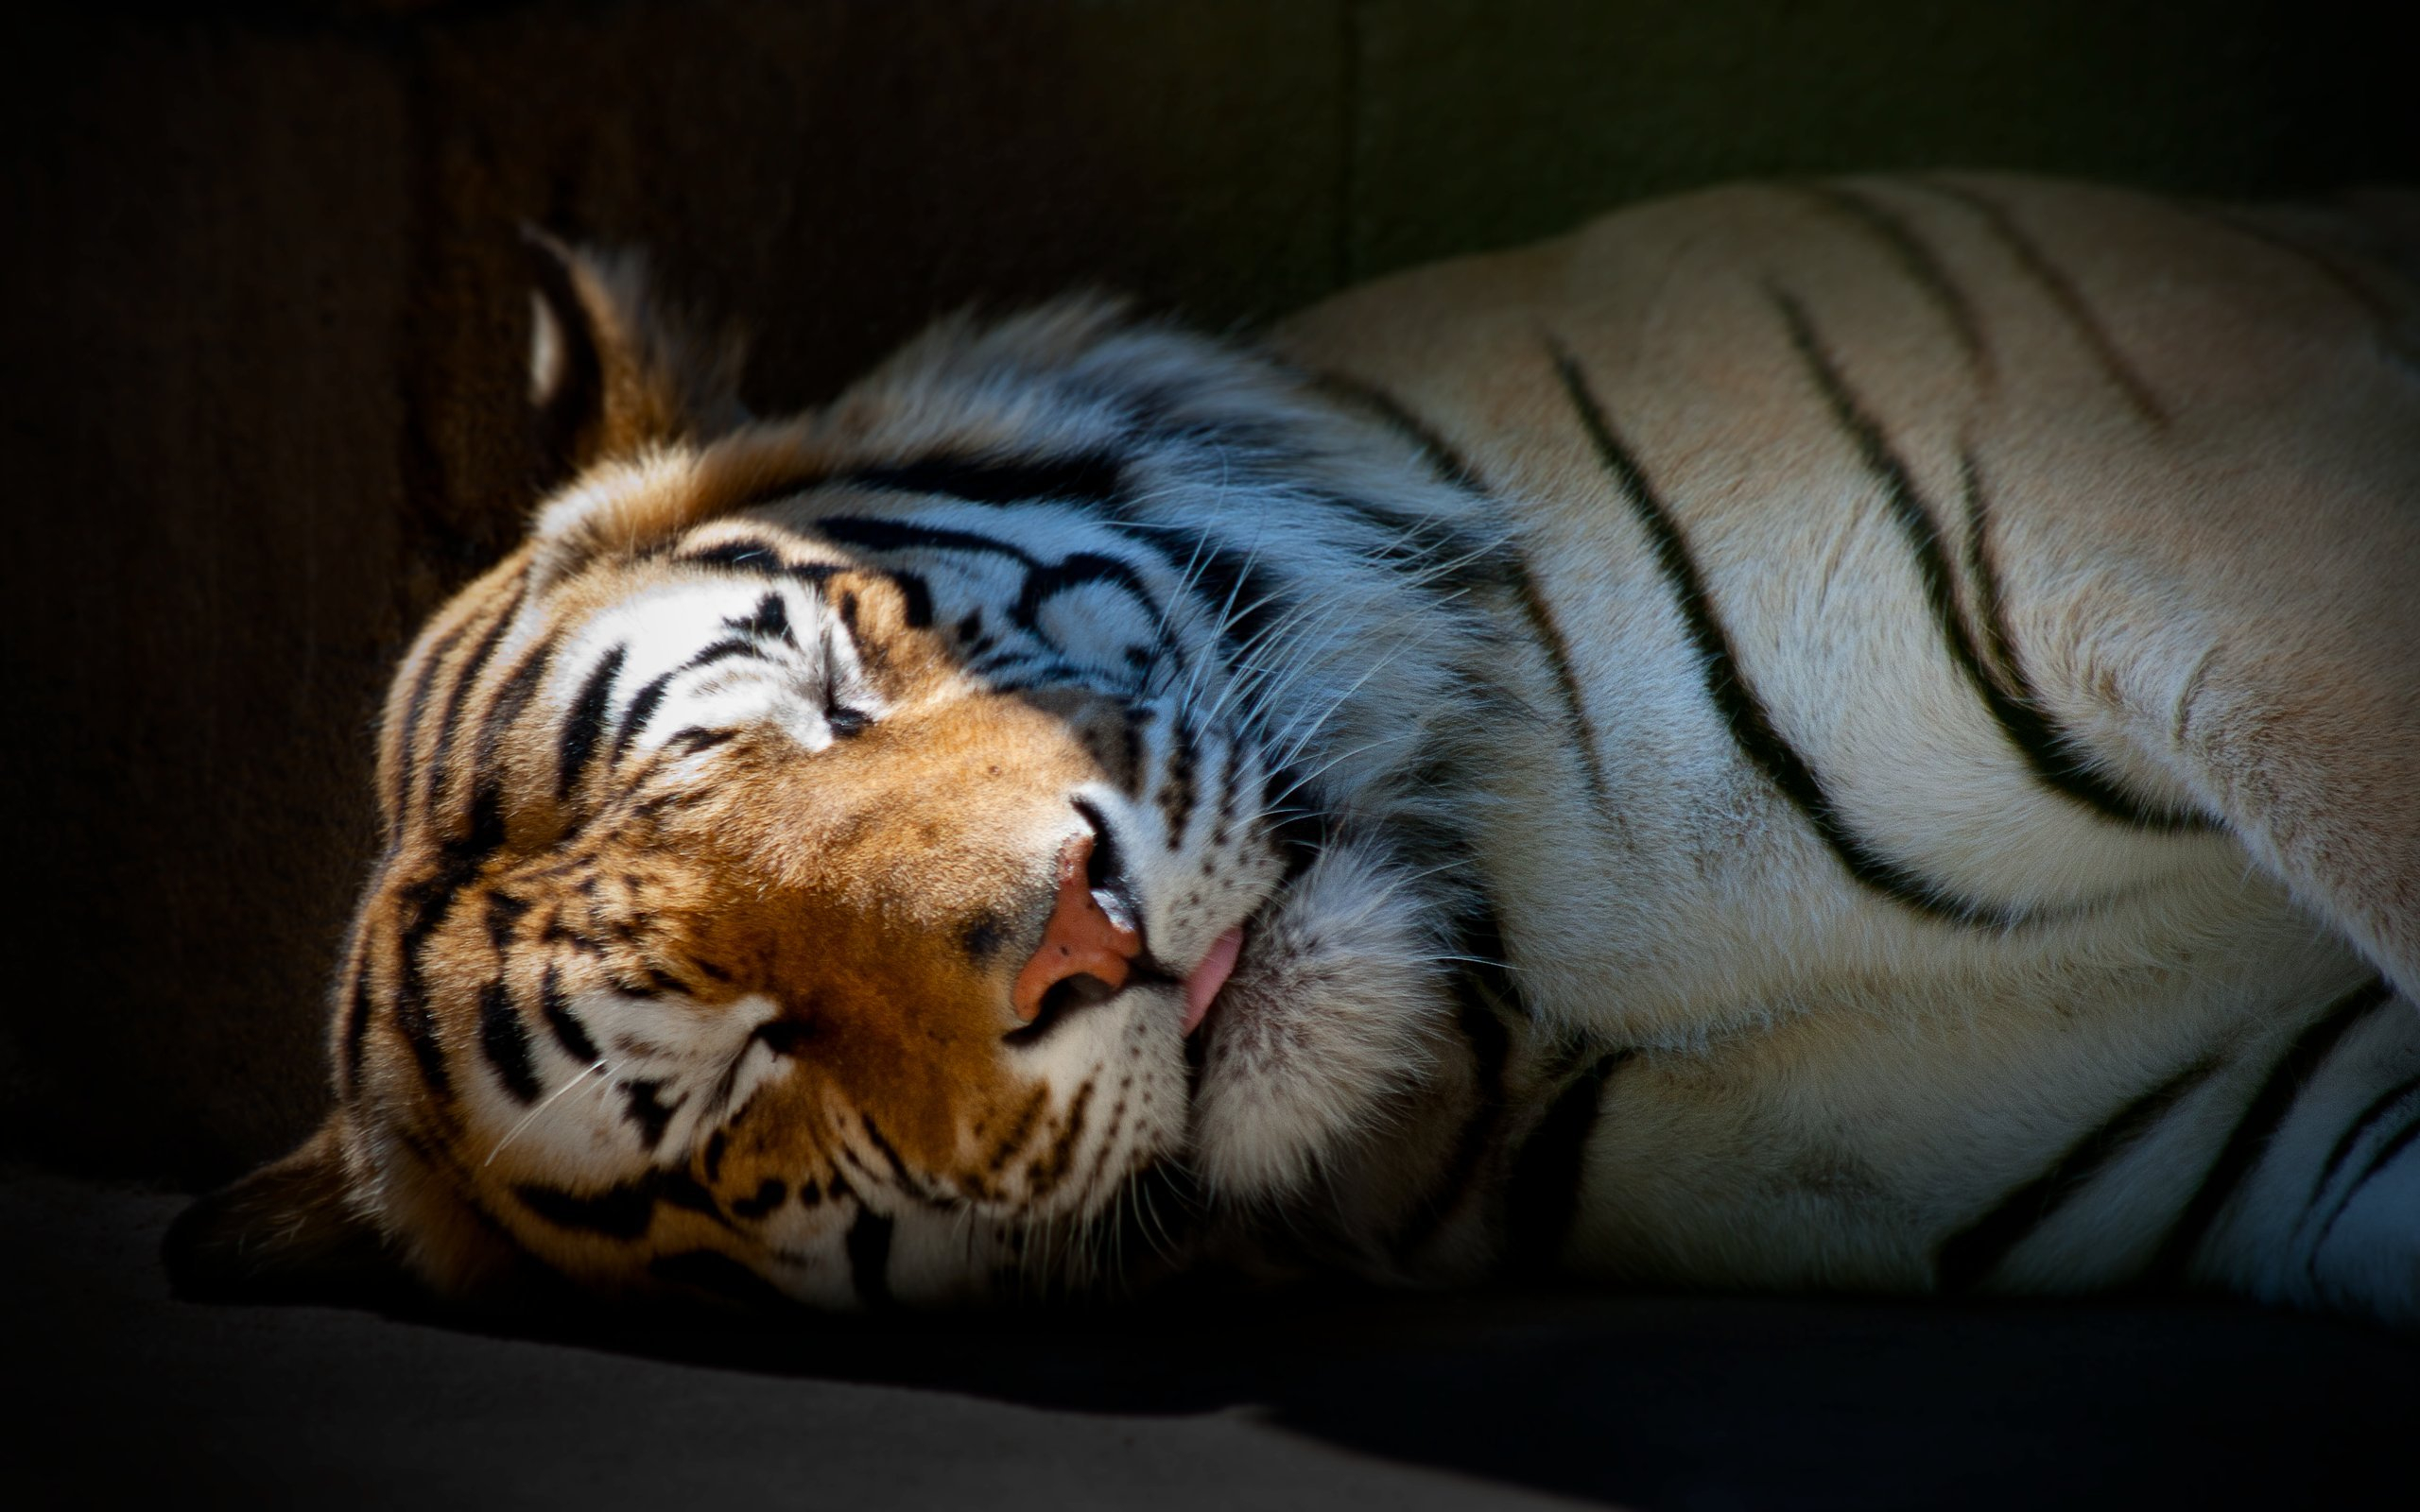 43267 download wallpaper Animals, Tigers screensavers and pictures for free